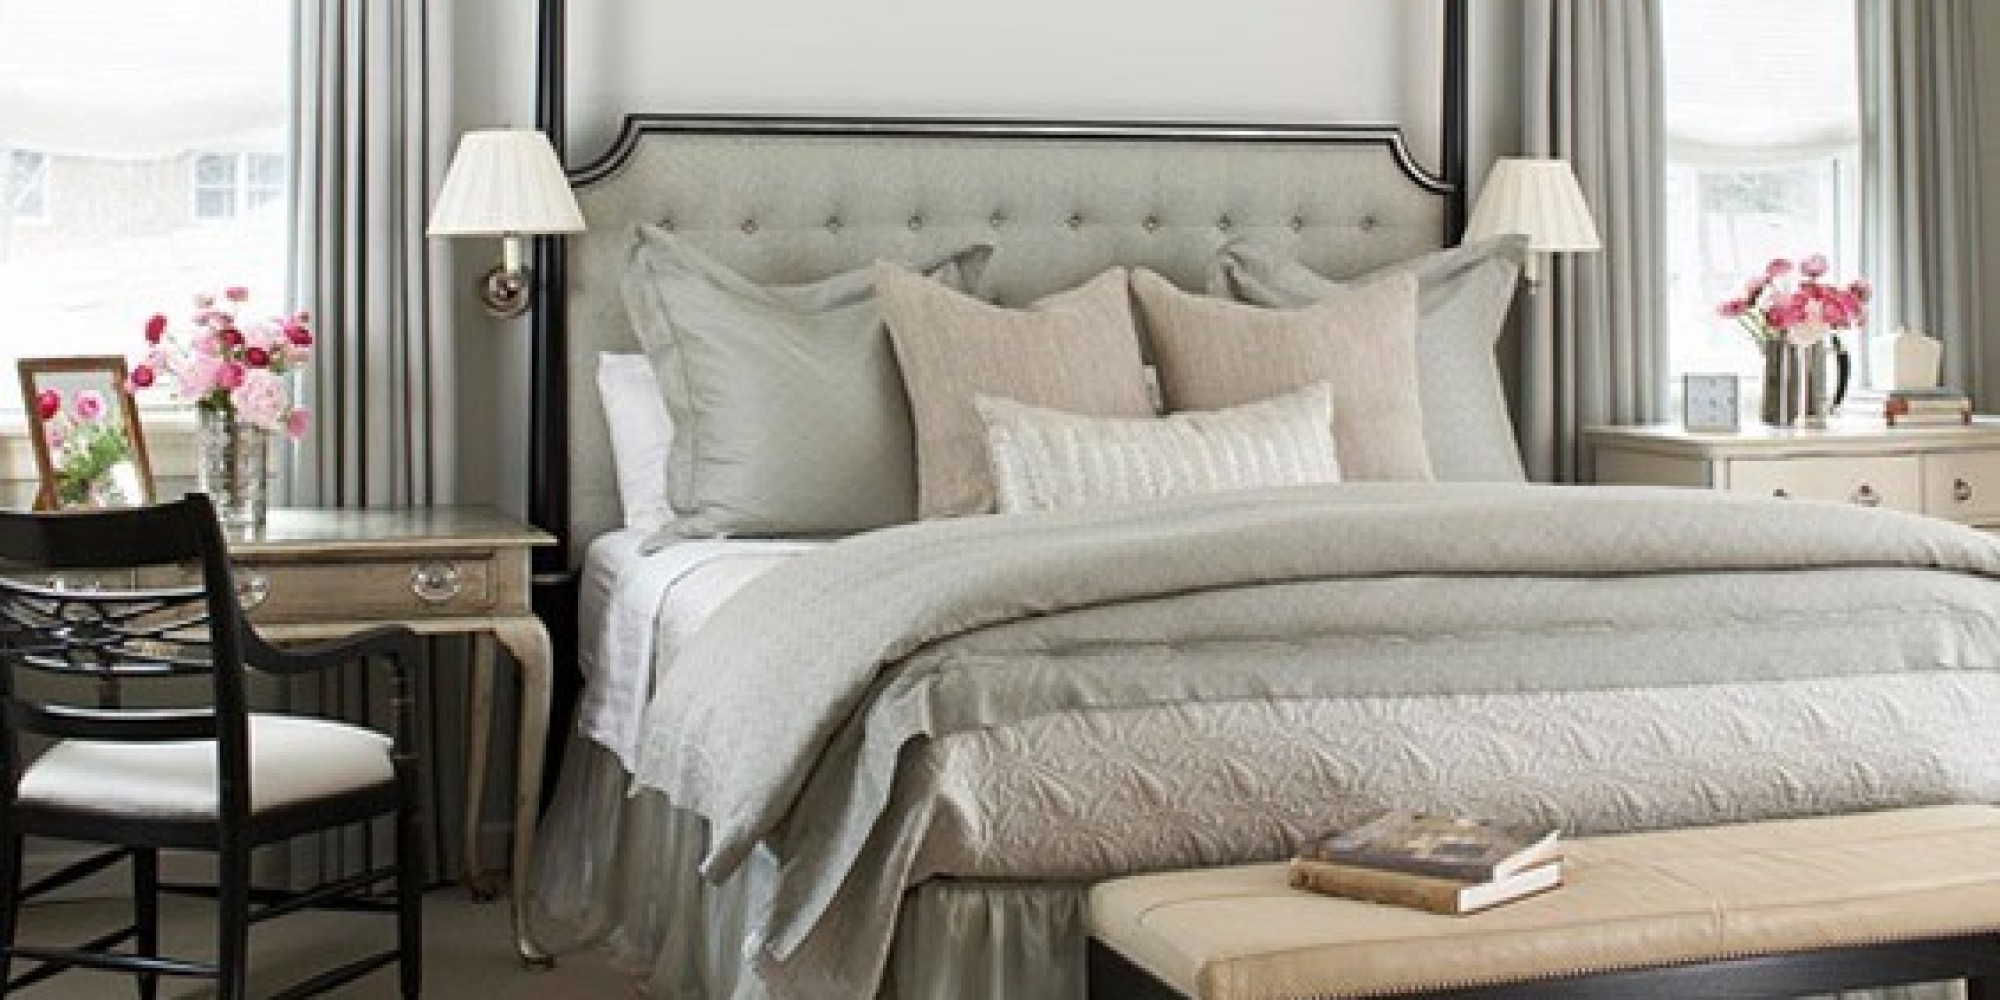 How To Mismatch Nightstands Photos Huffpost